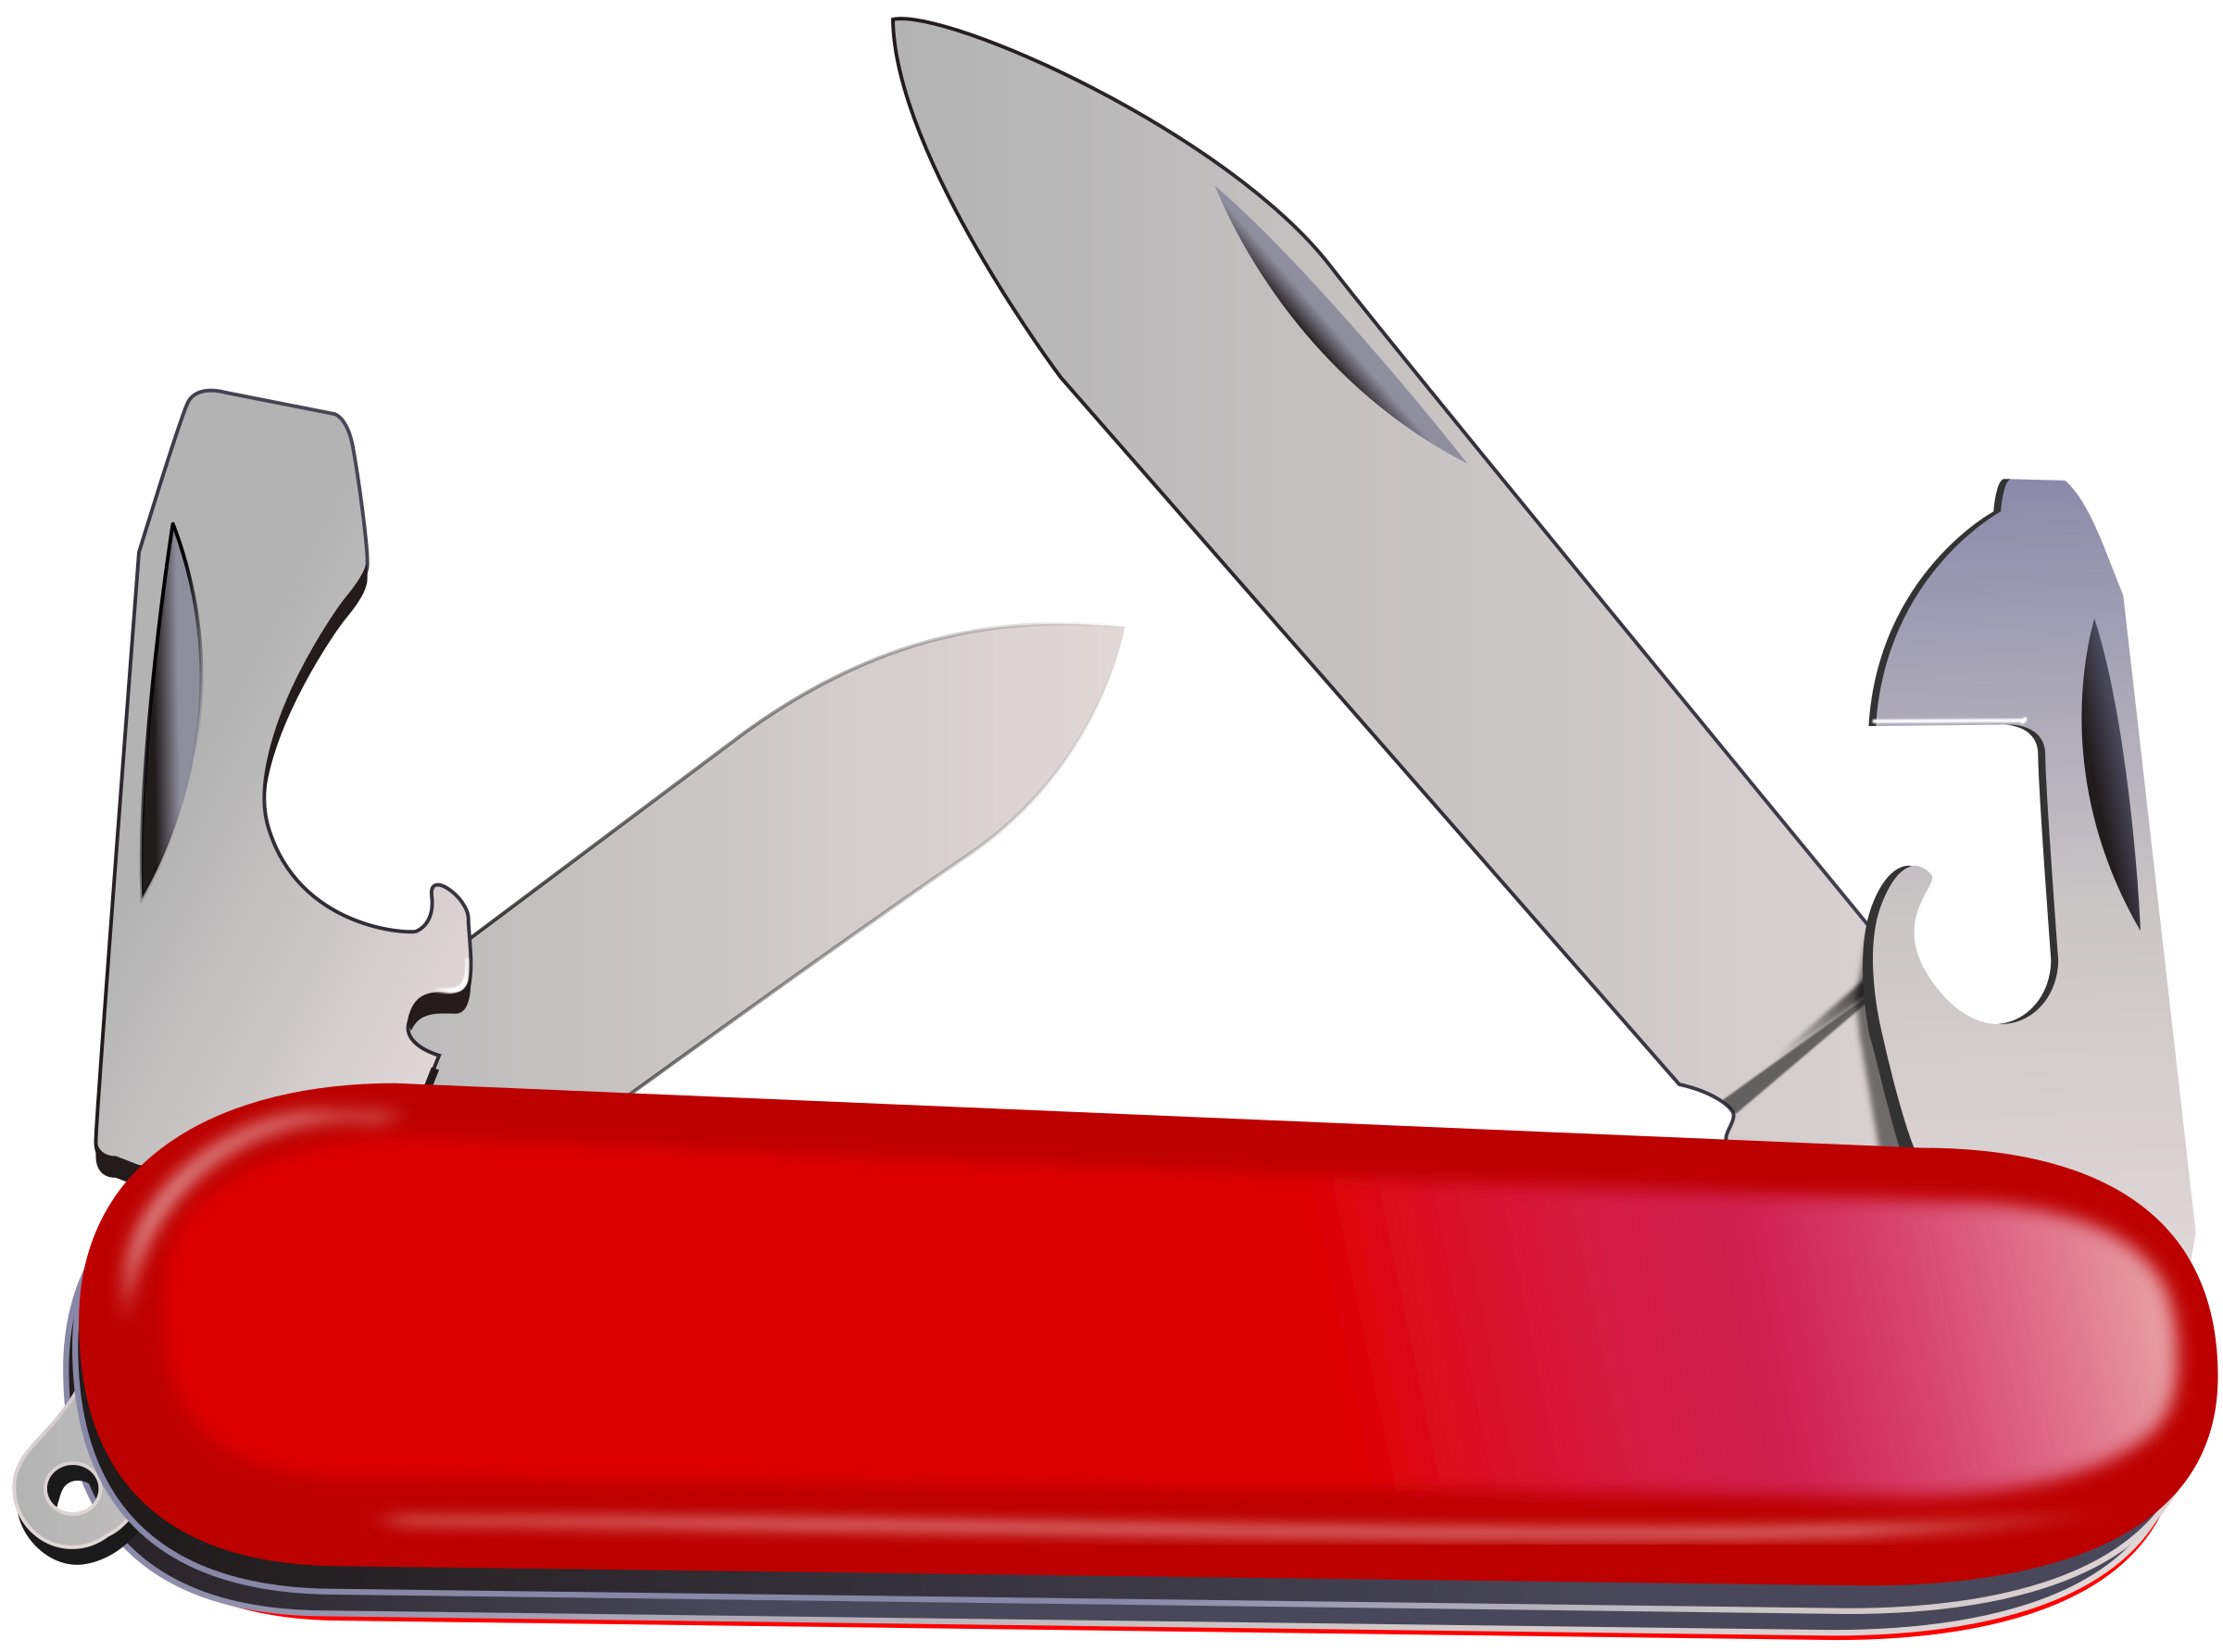 Swiss army big image. Knife clipart pen knife